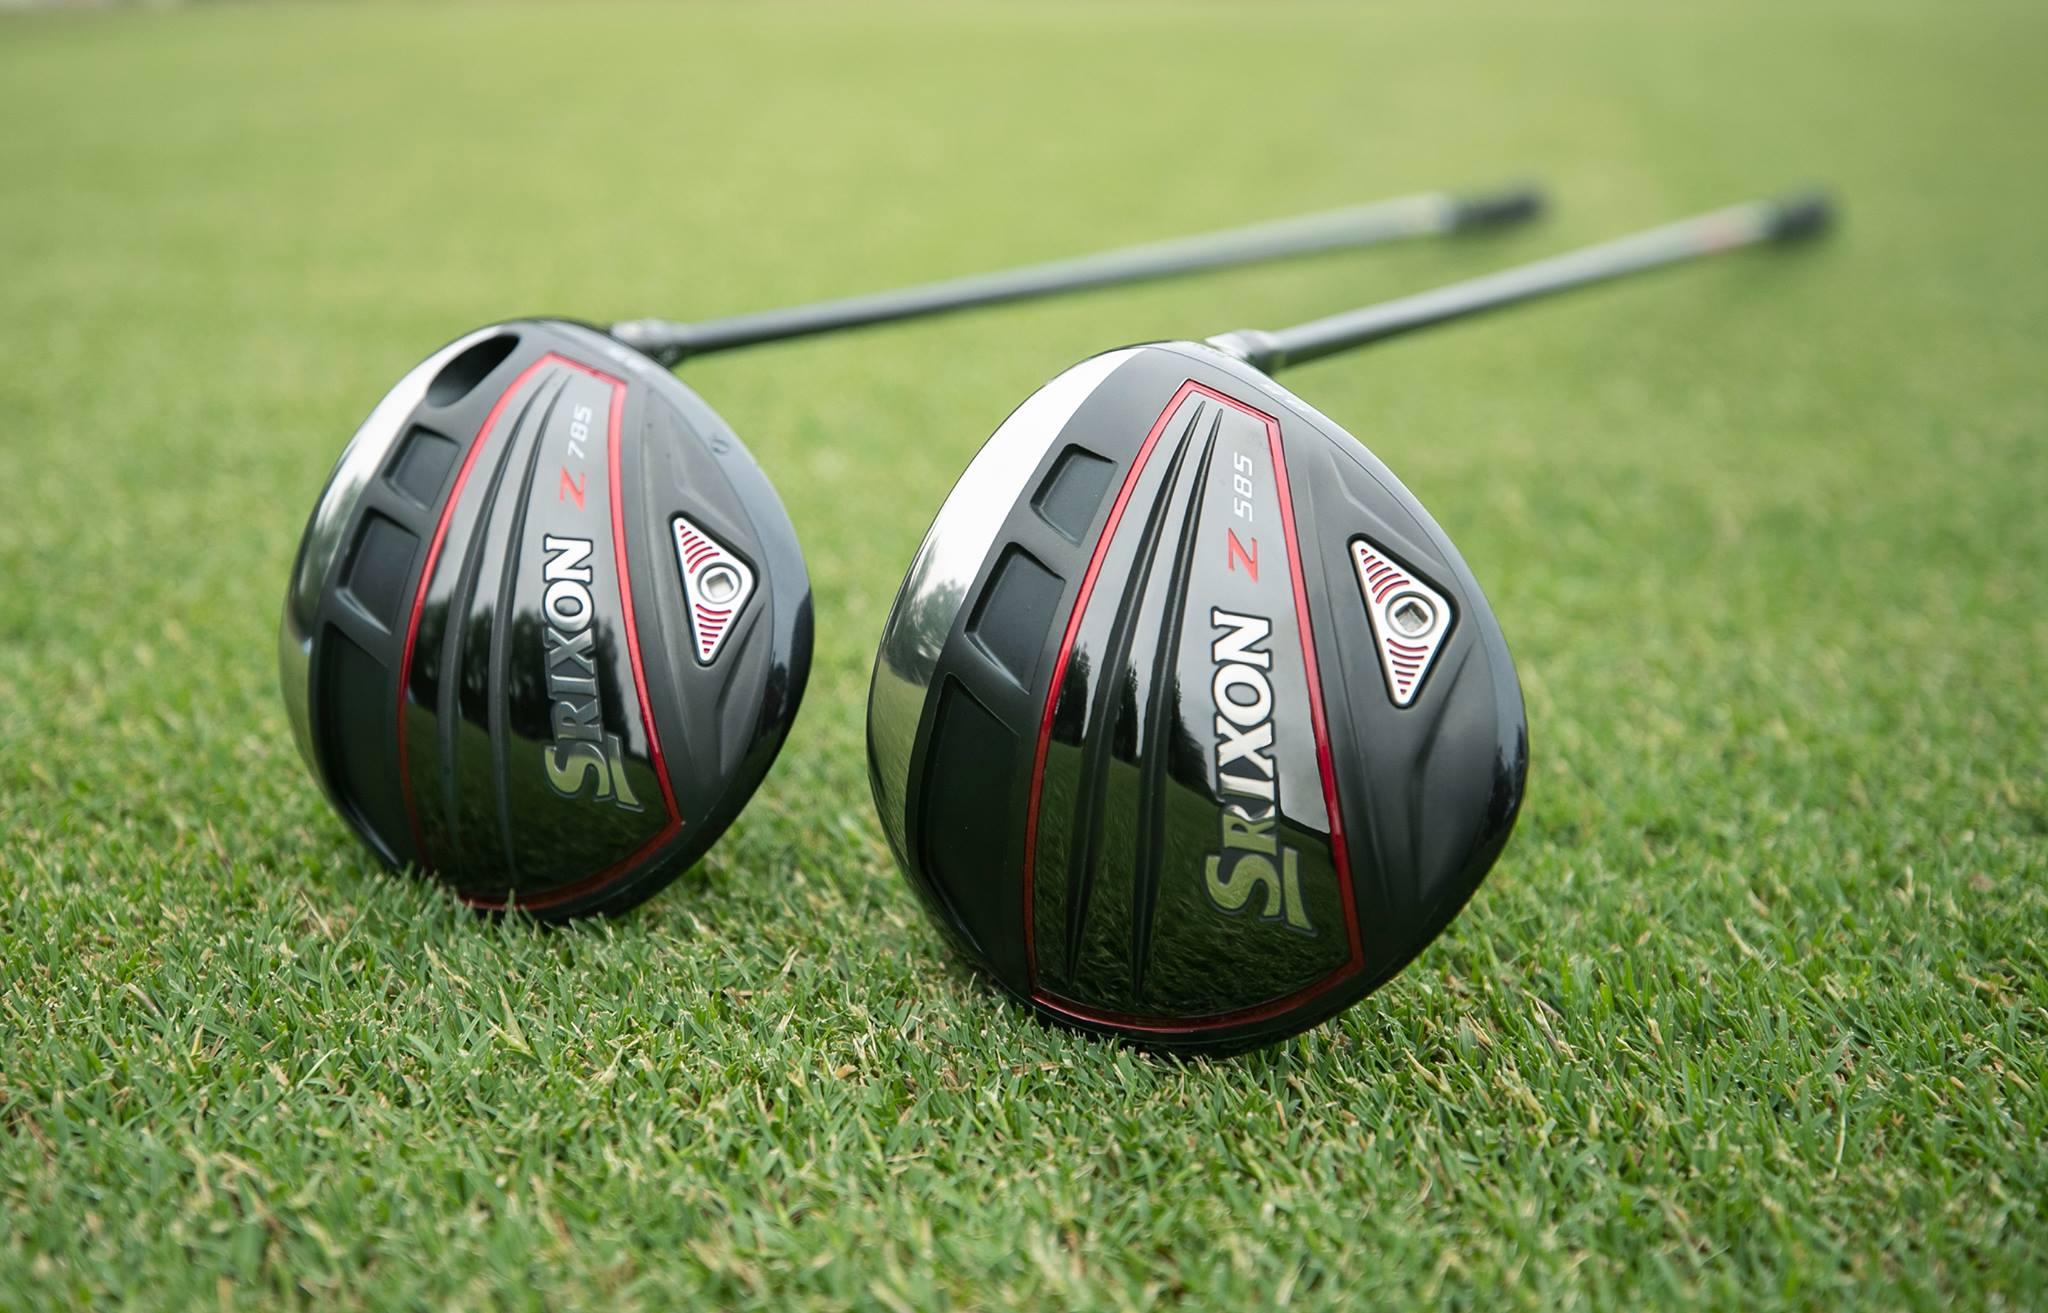 Srixon Golf Demo Day at Angel Park Golf Club